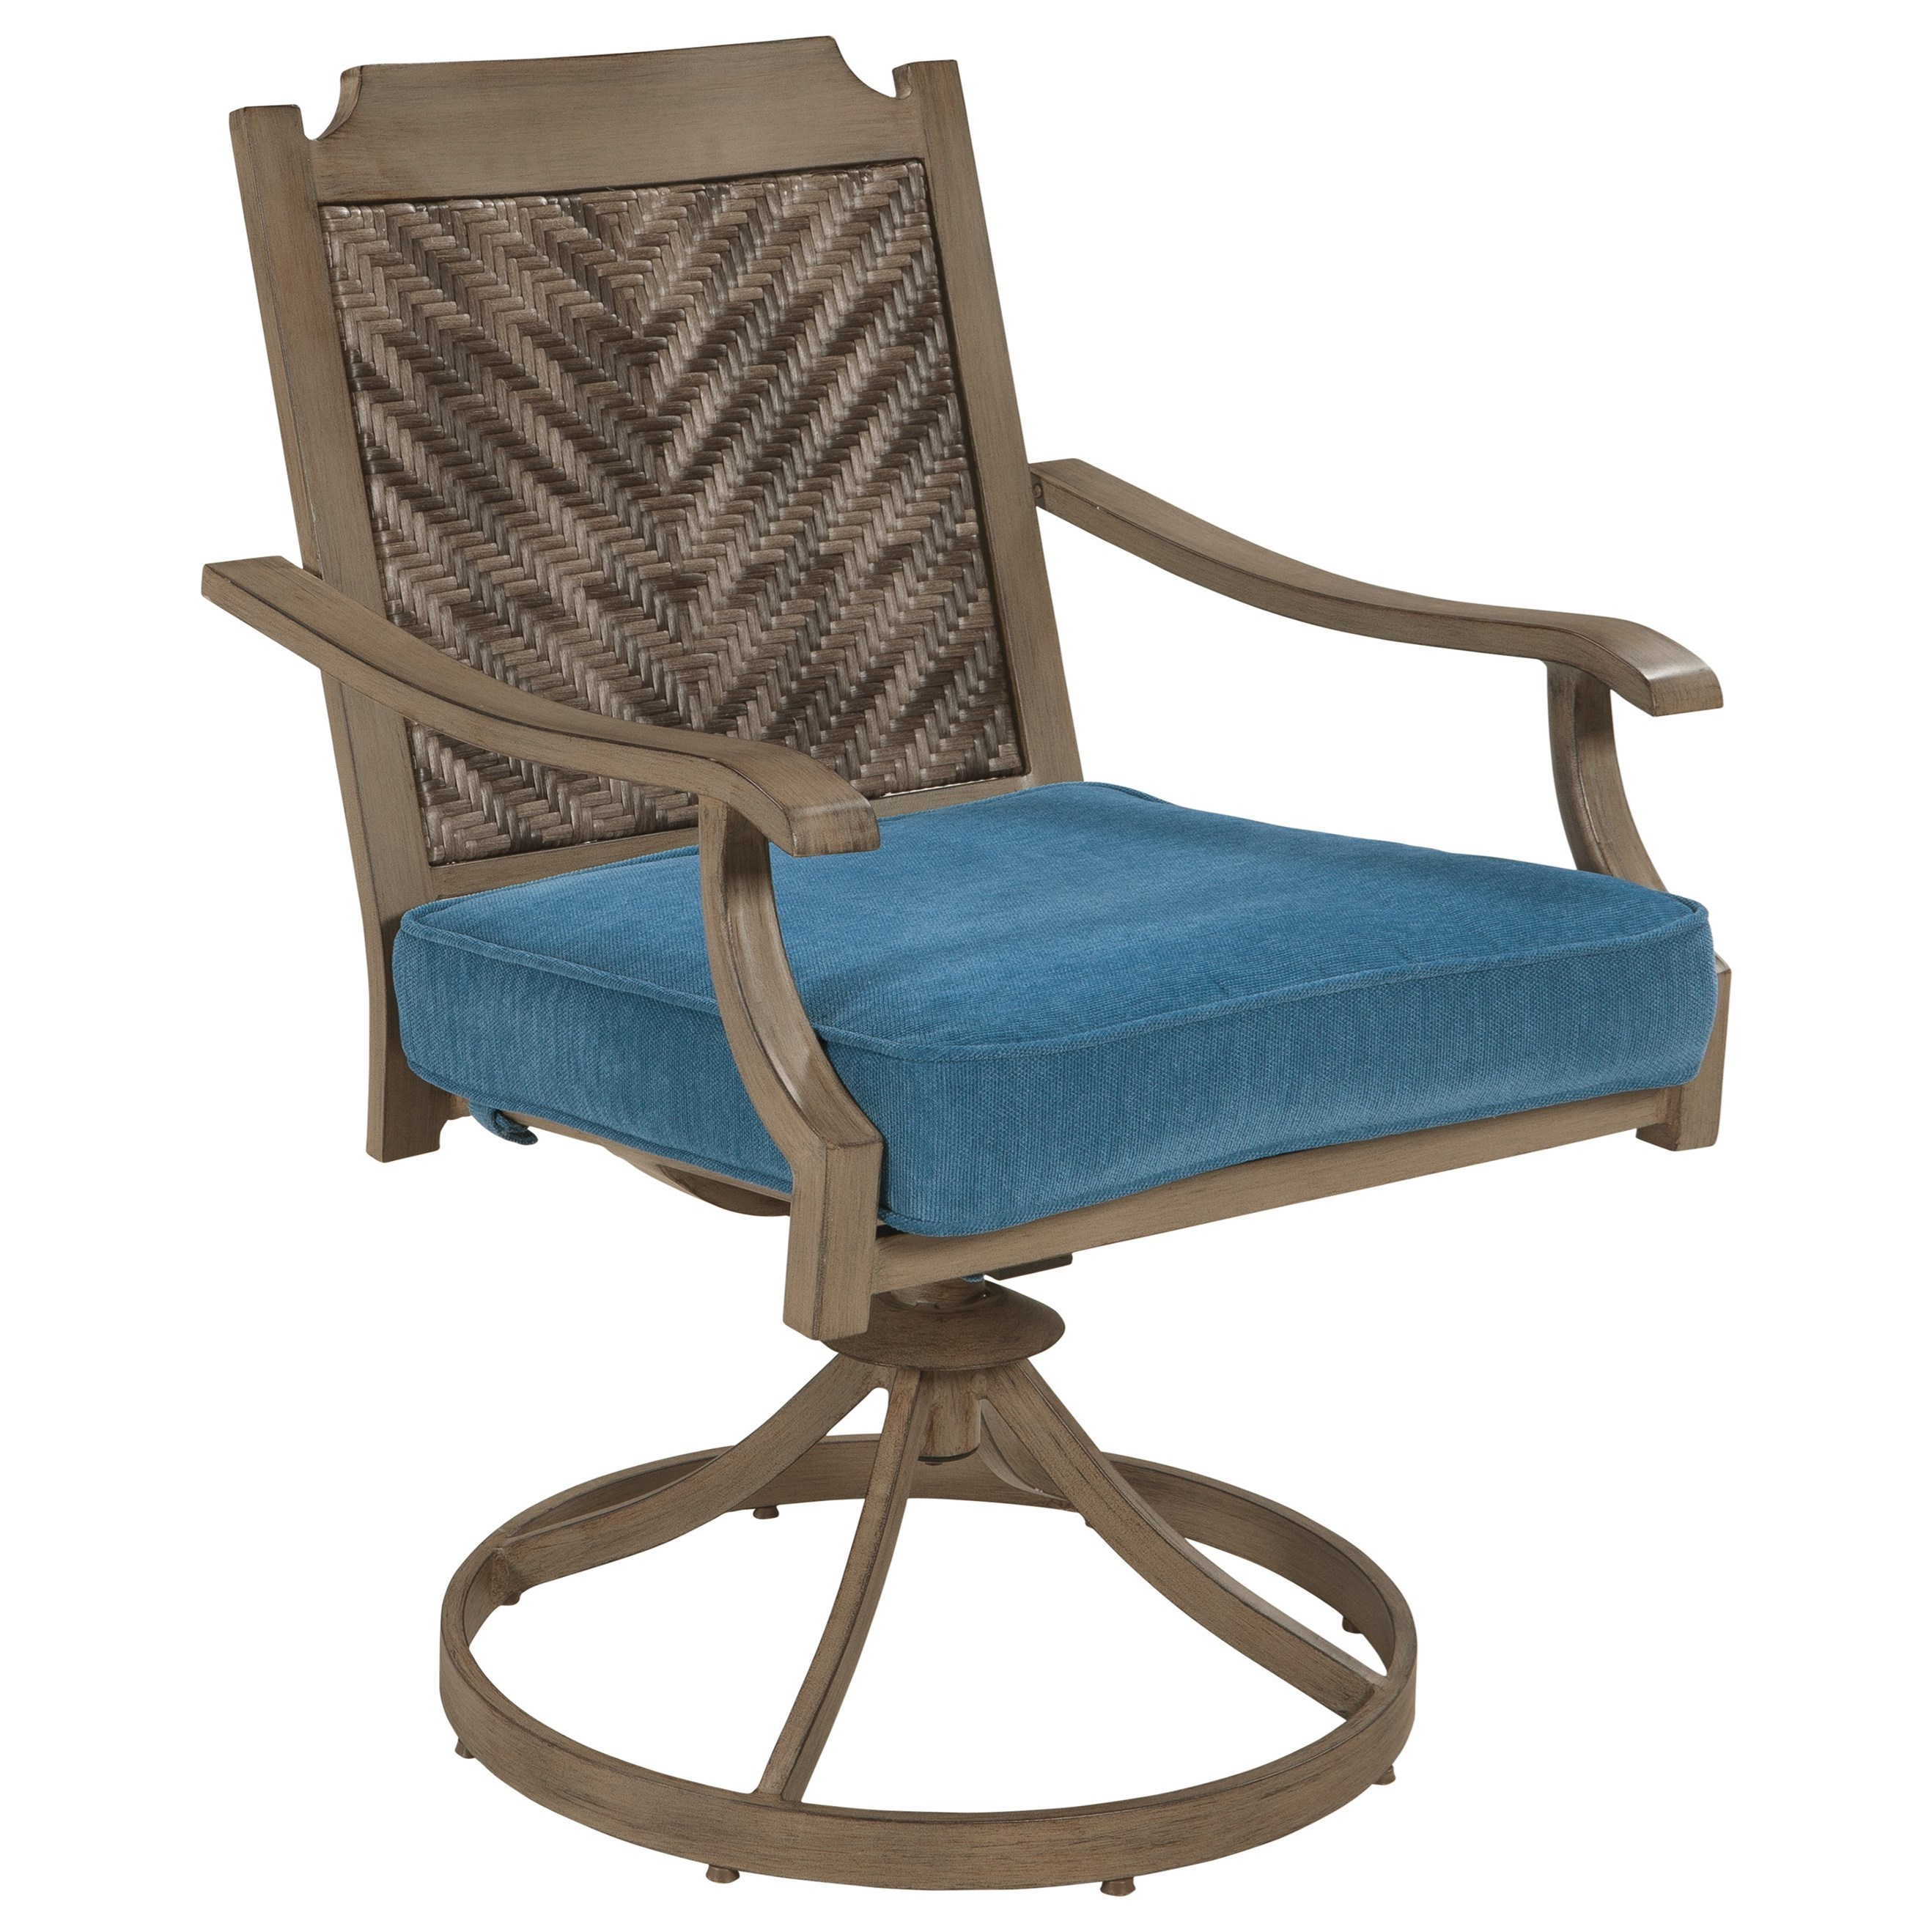 Beau Outdoor Swivel Chair With Cushion